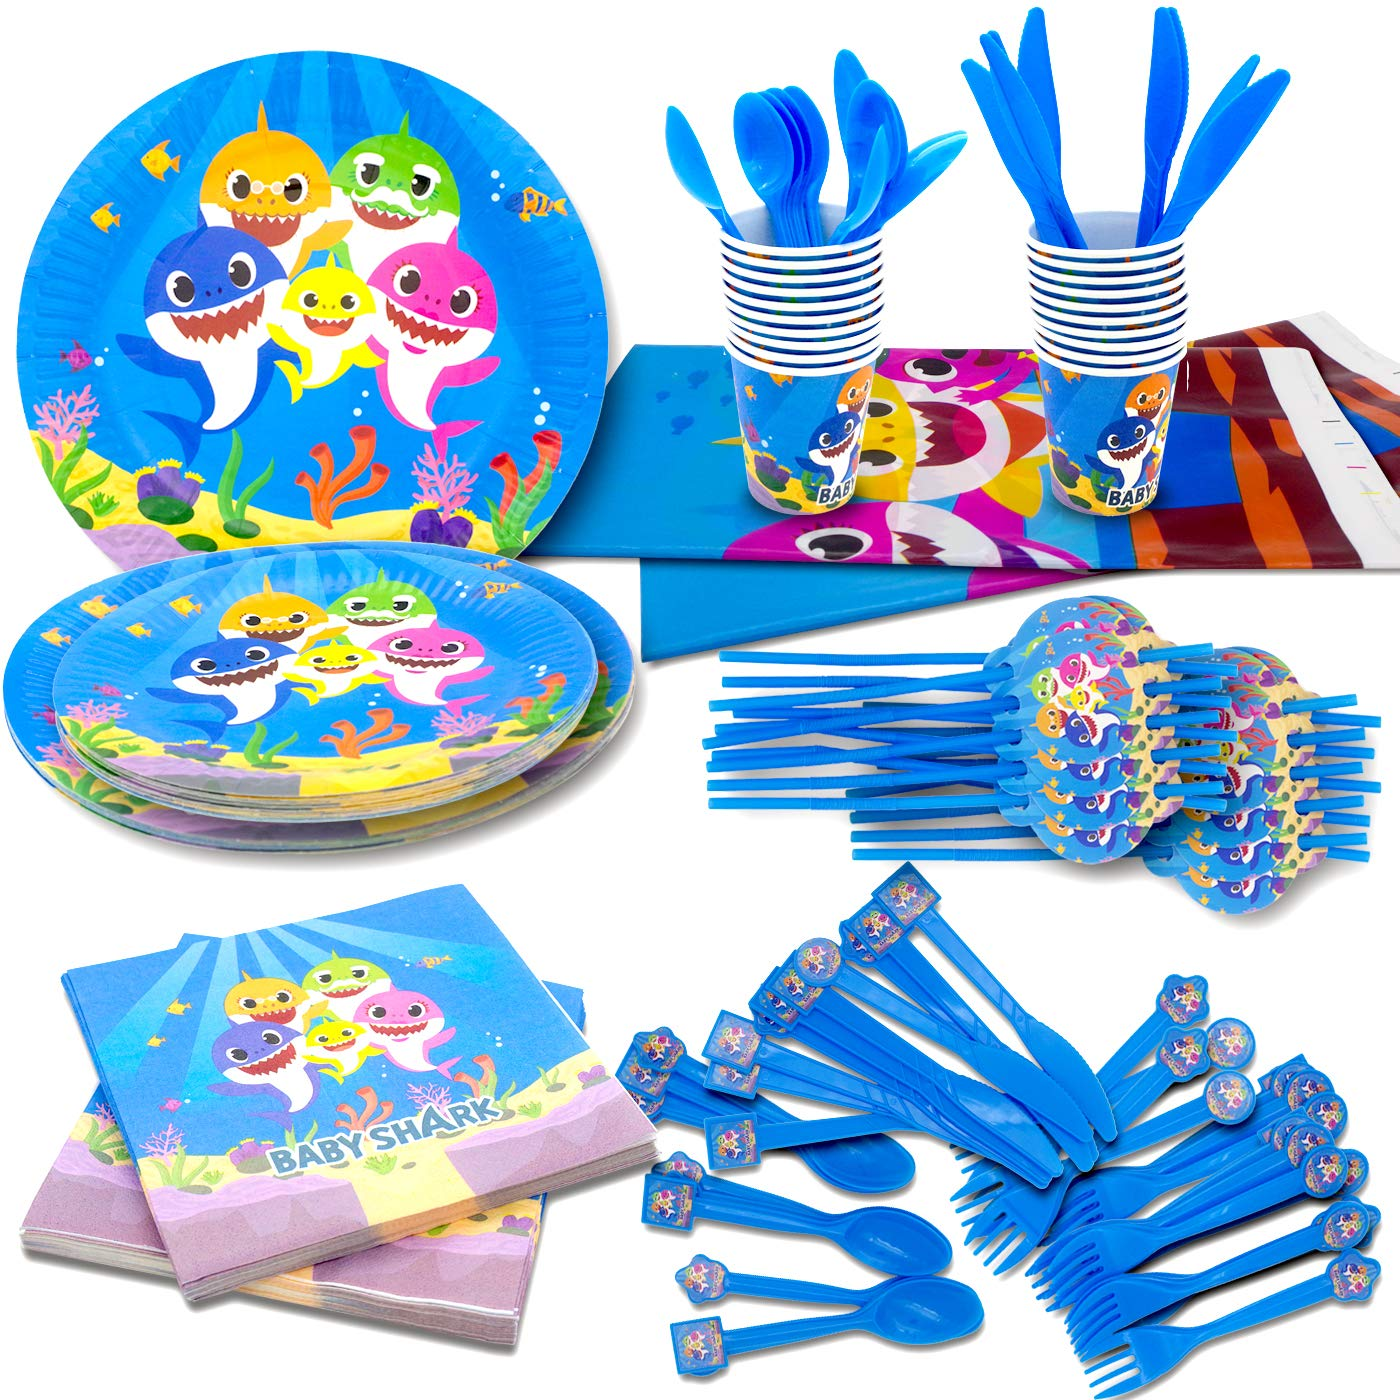 Cute Shark Party Supplies,182 Pieces Little Shark Party Decoration,Includes Table Cloth 7''Plate 9''Plates Napkins Cups Forks Knives Spoons Straws, Serves 20 Guest by Topivot